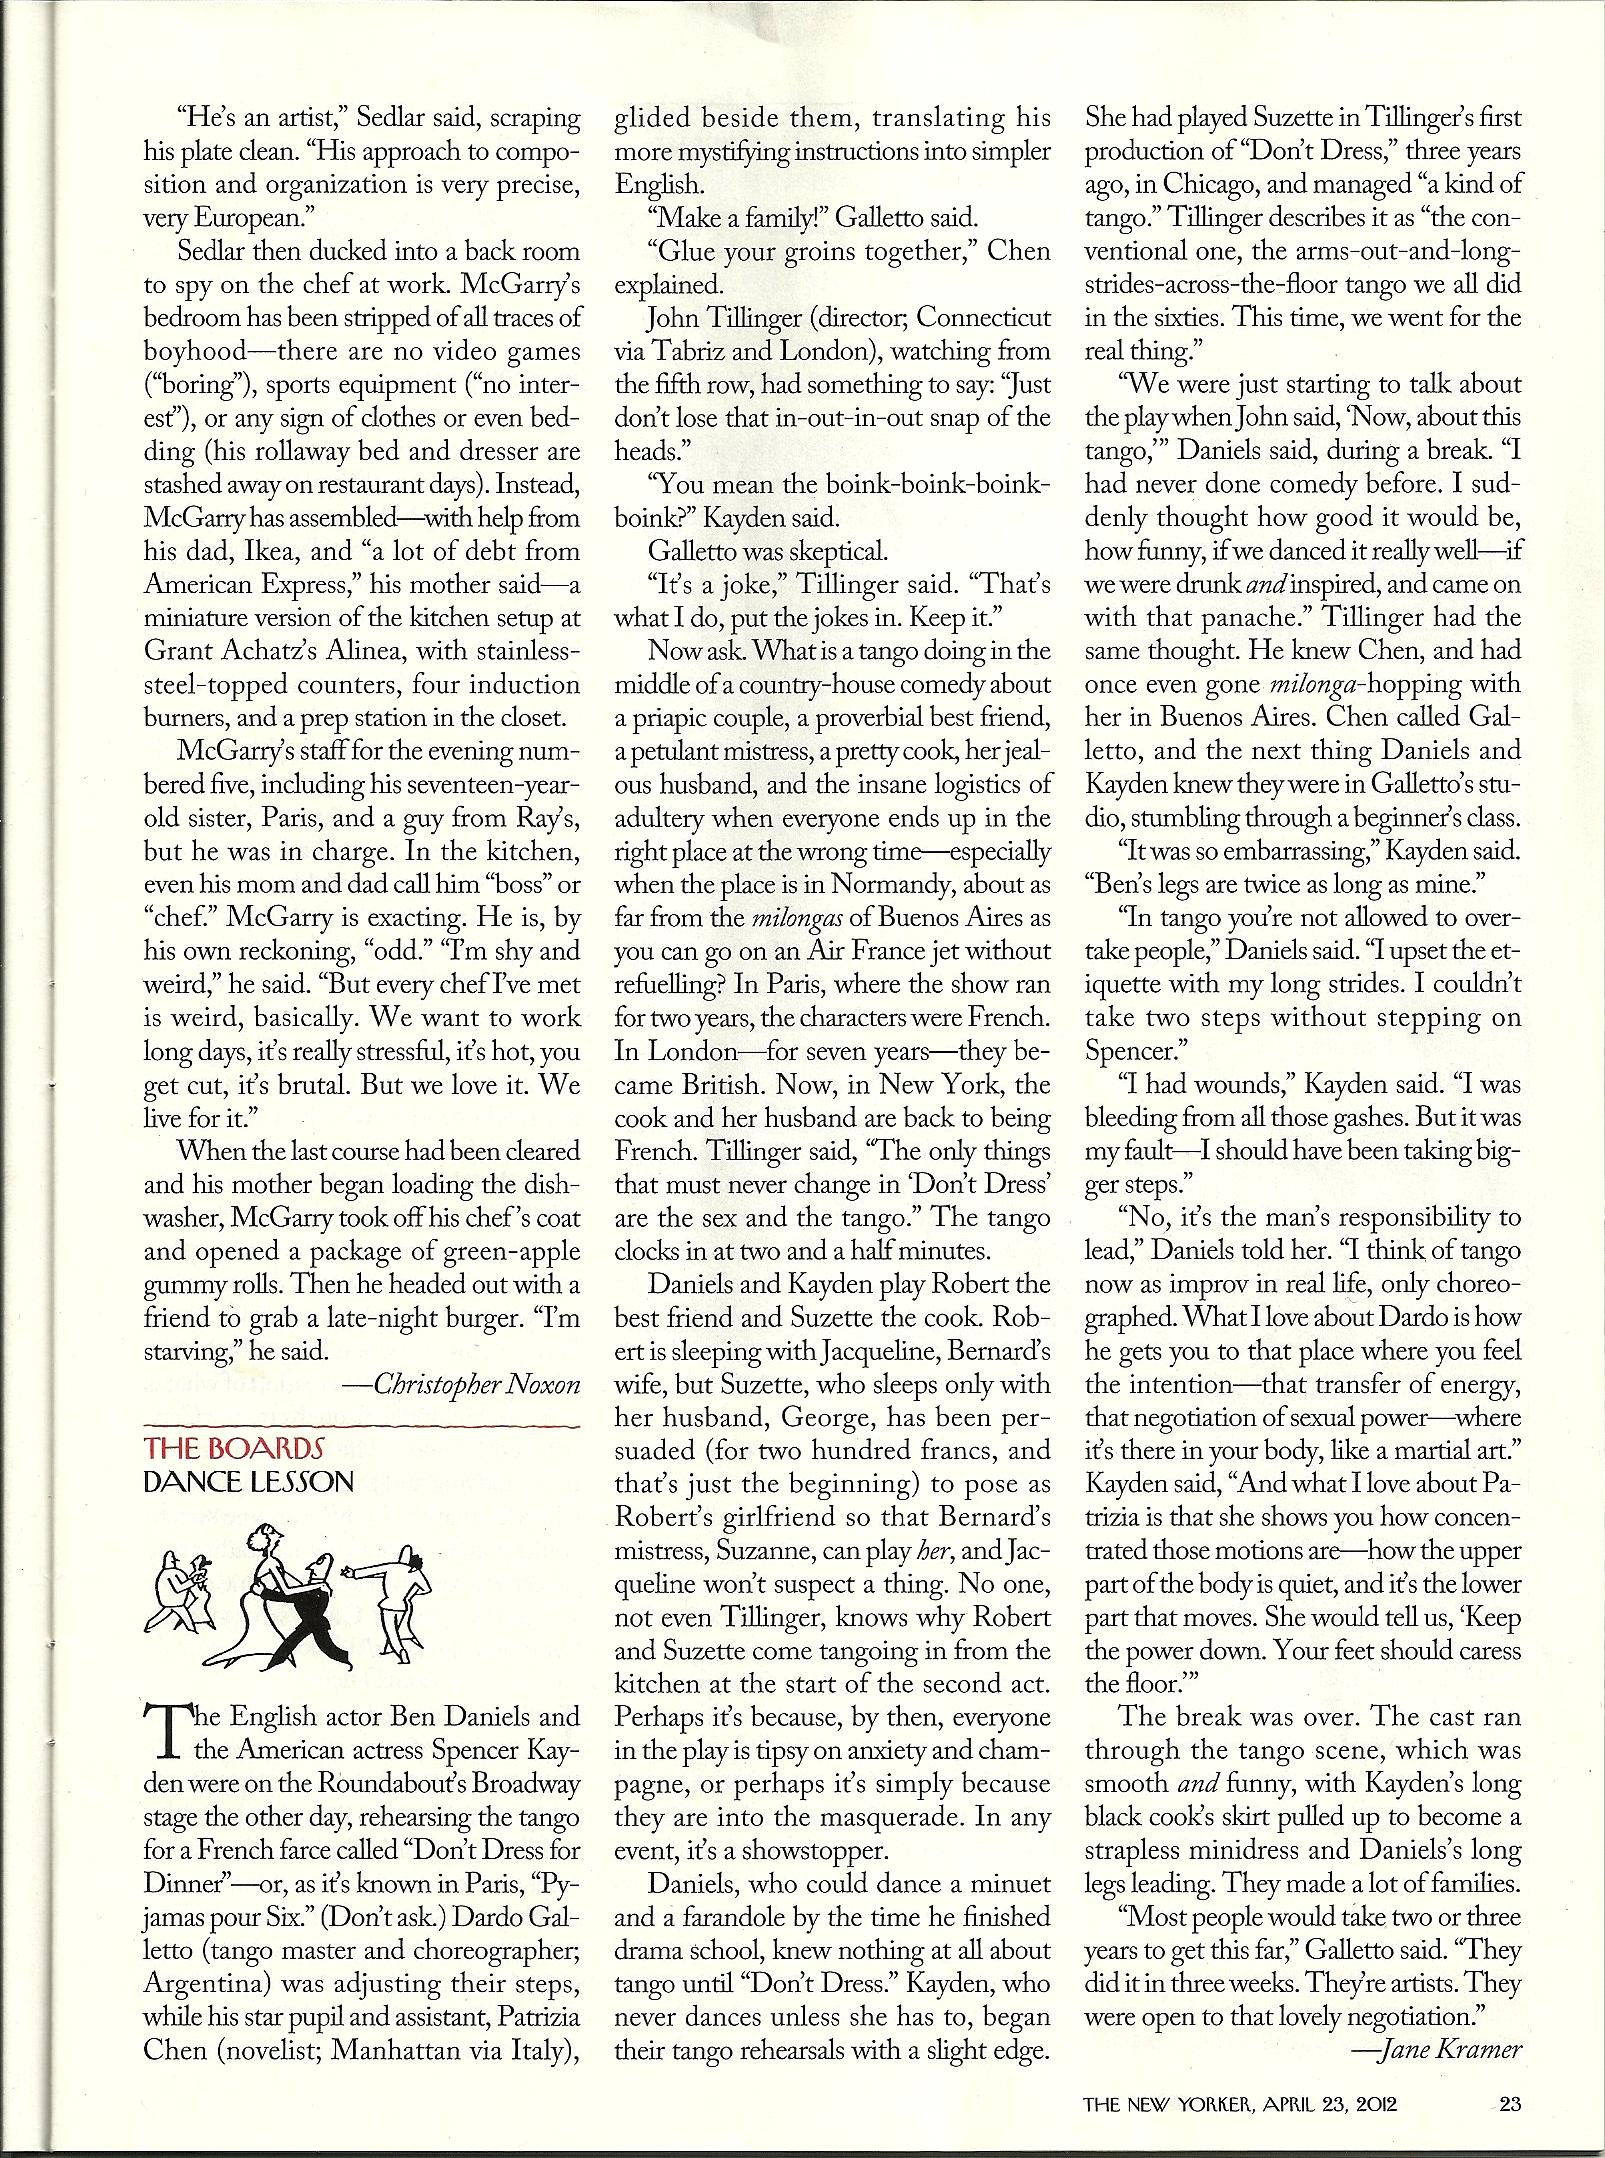 The New Yorker April 2012